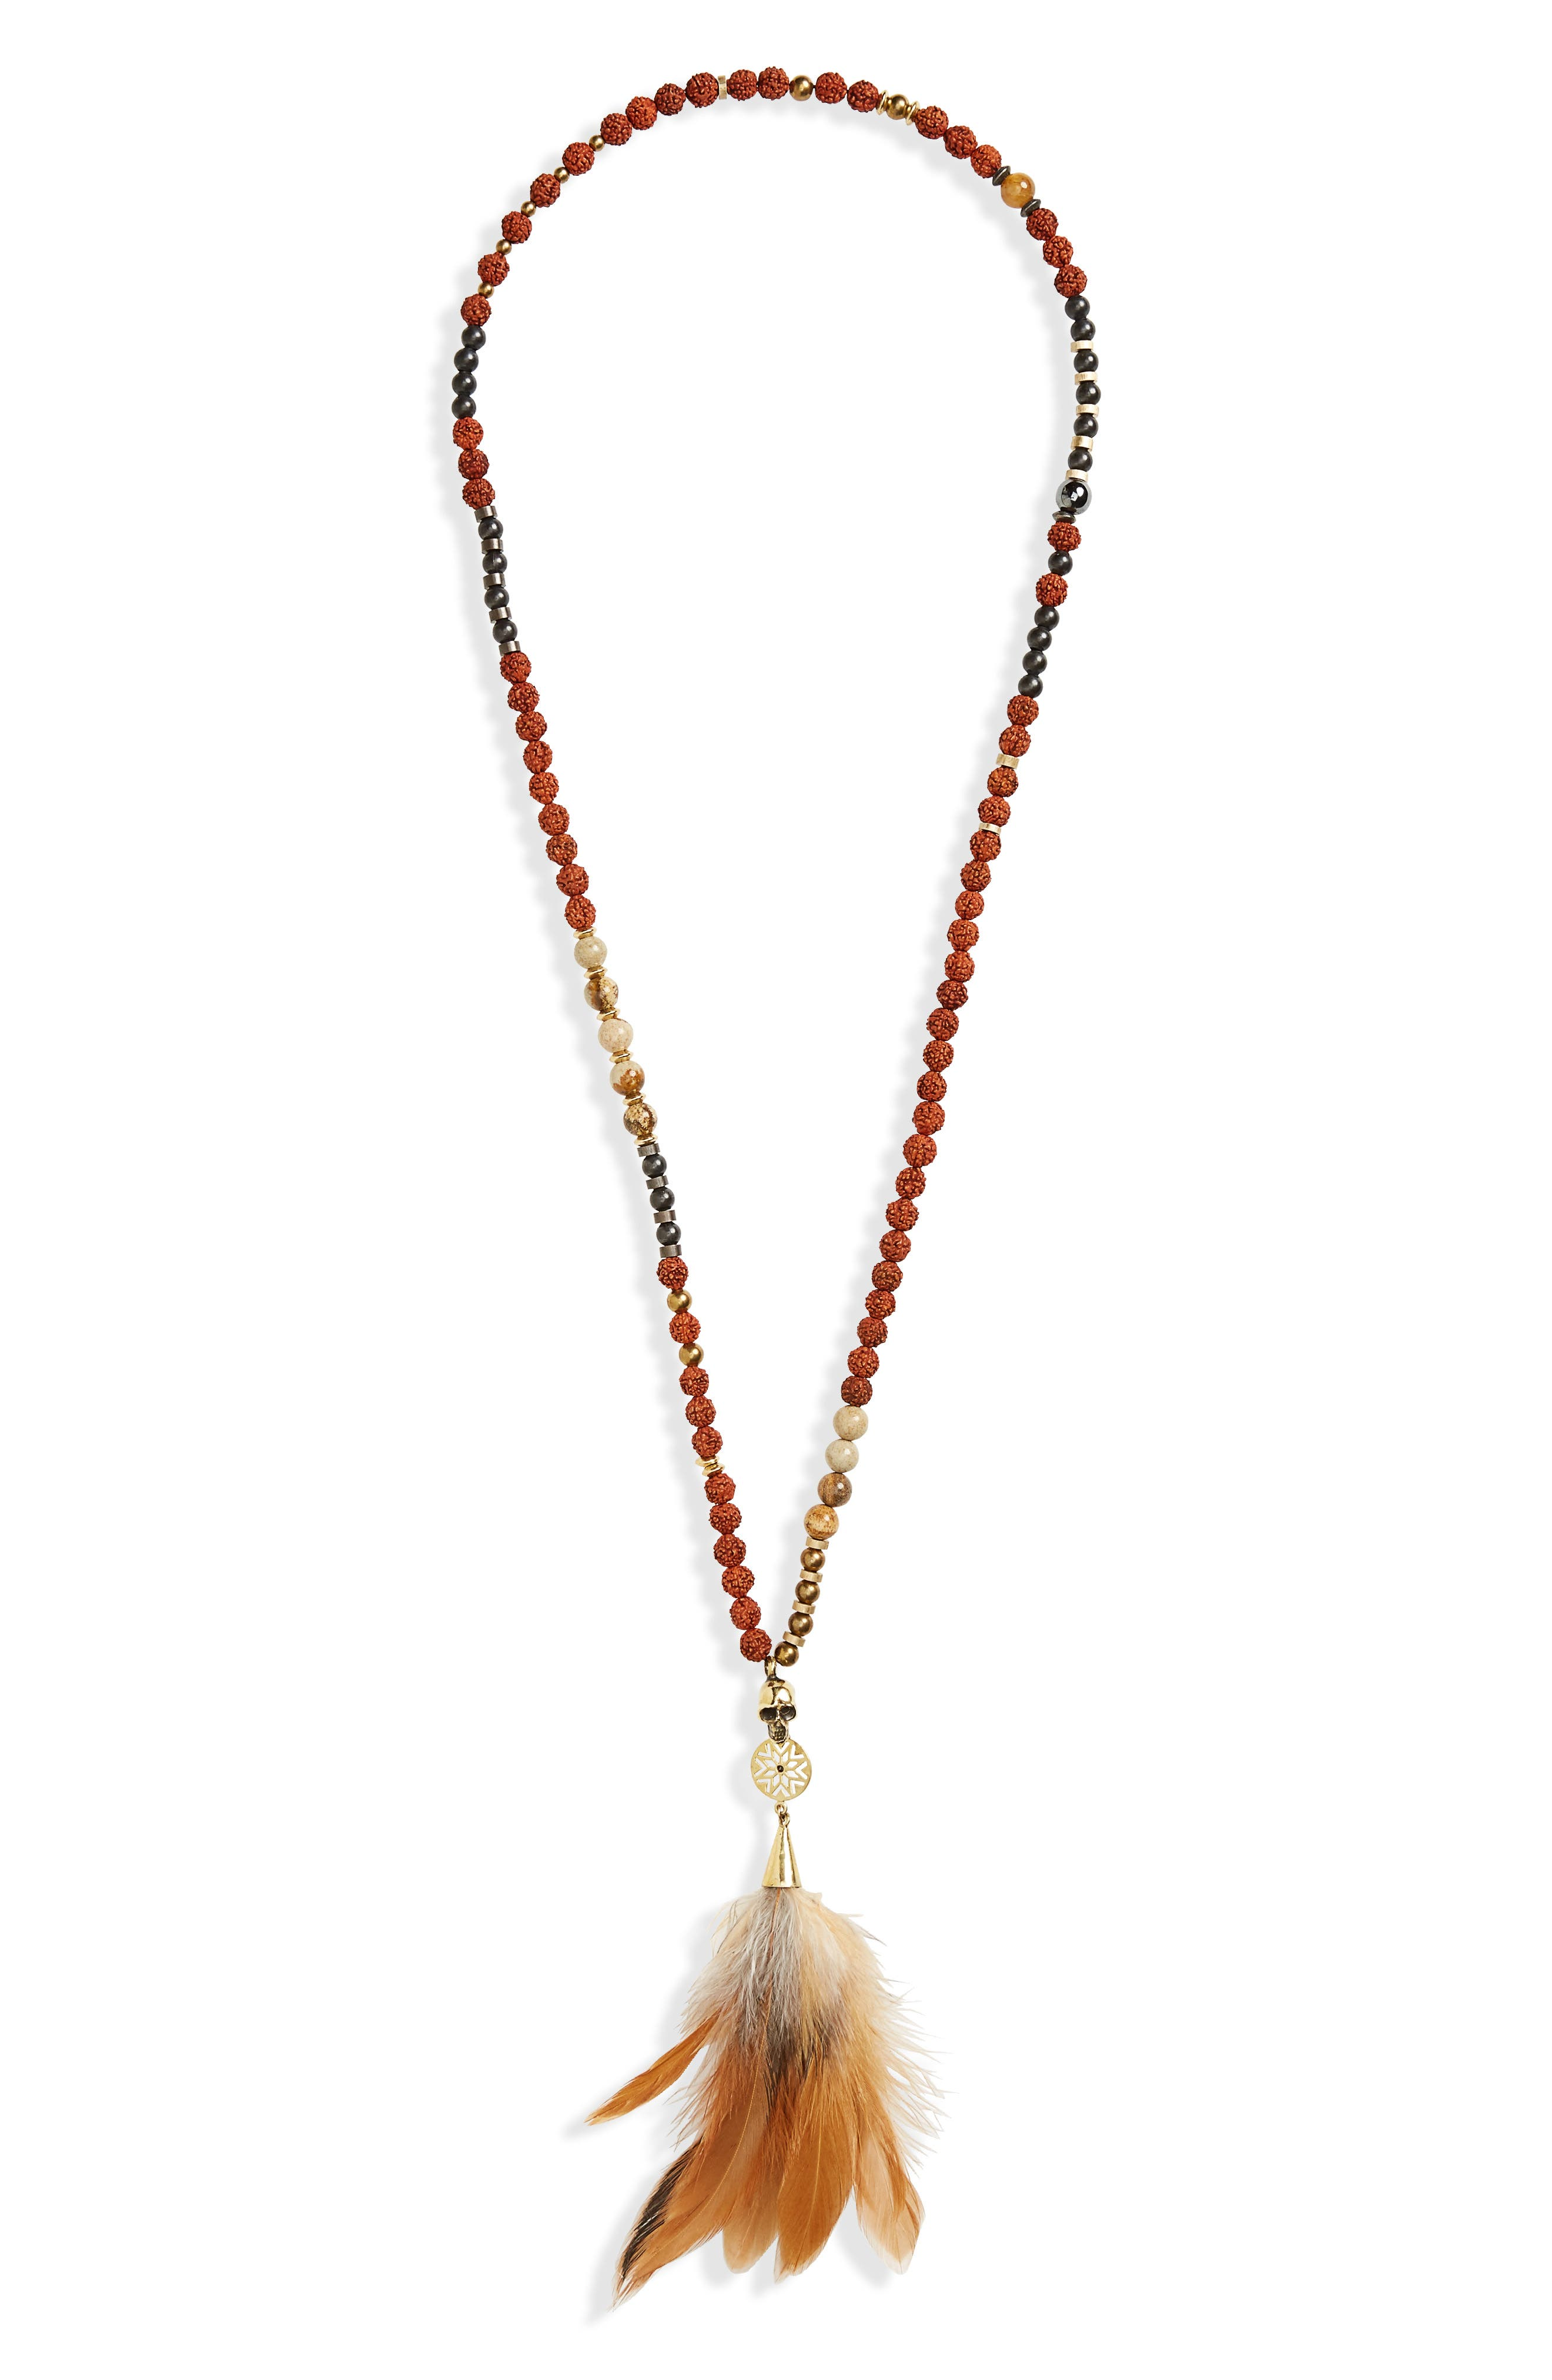 Seed Skull Necklace,                             Main thumbnail 1, color,                             200